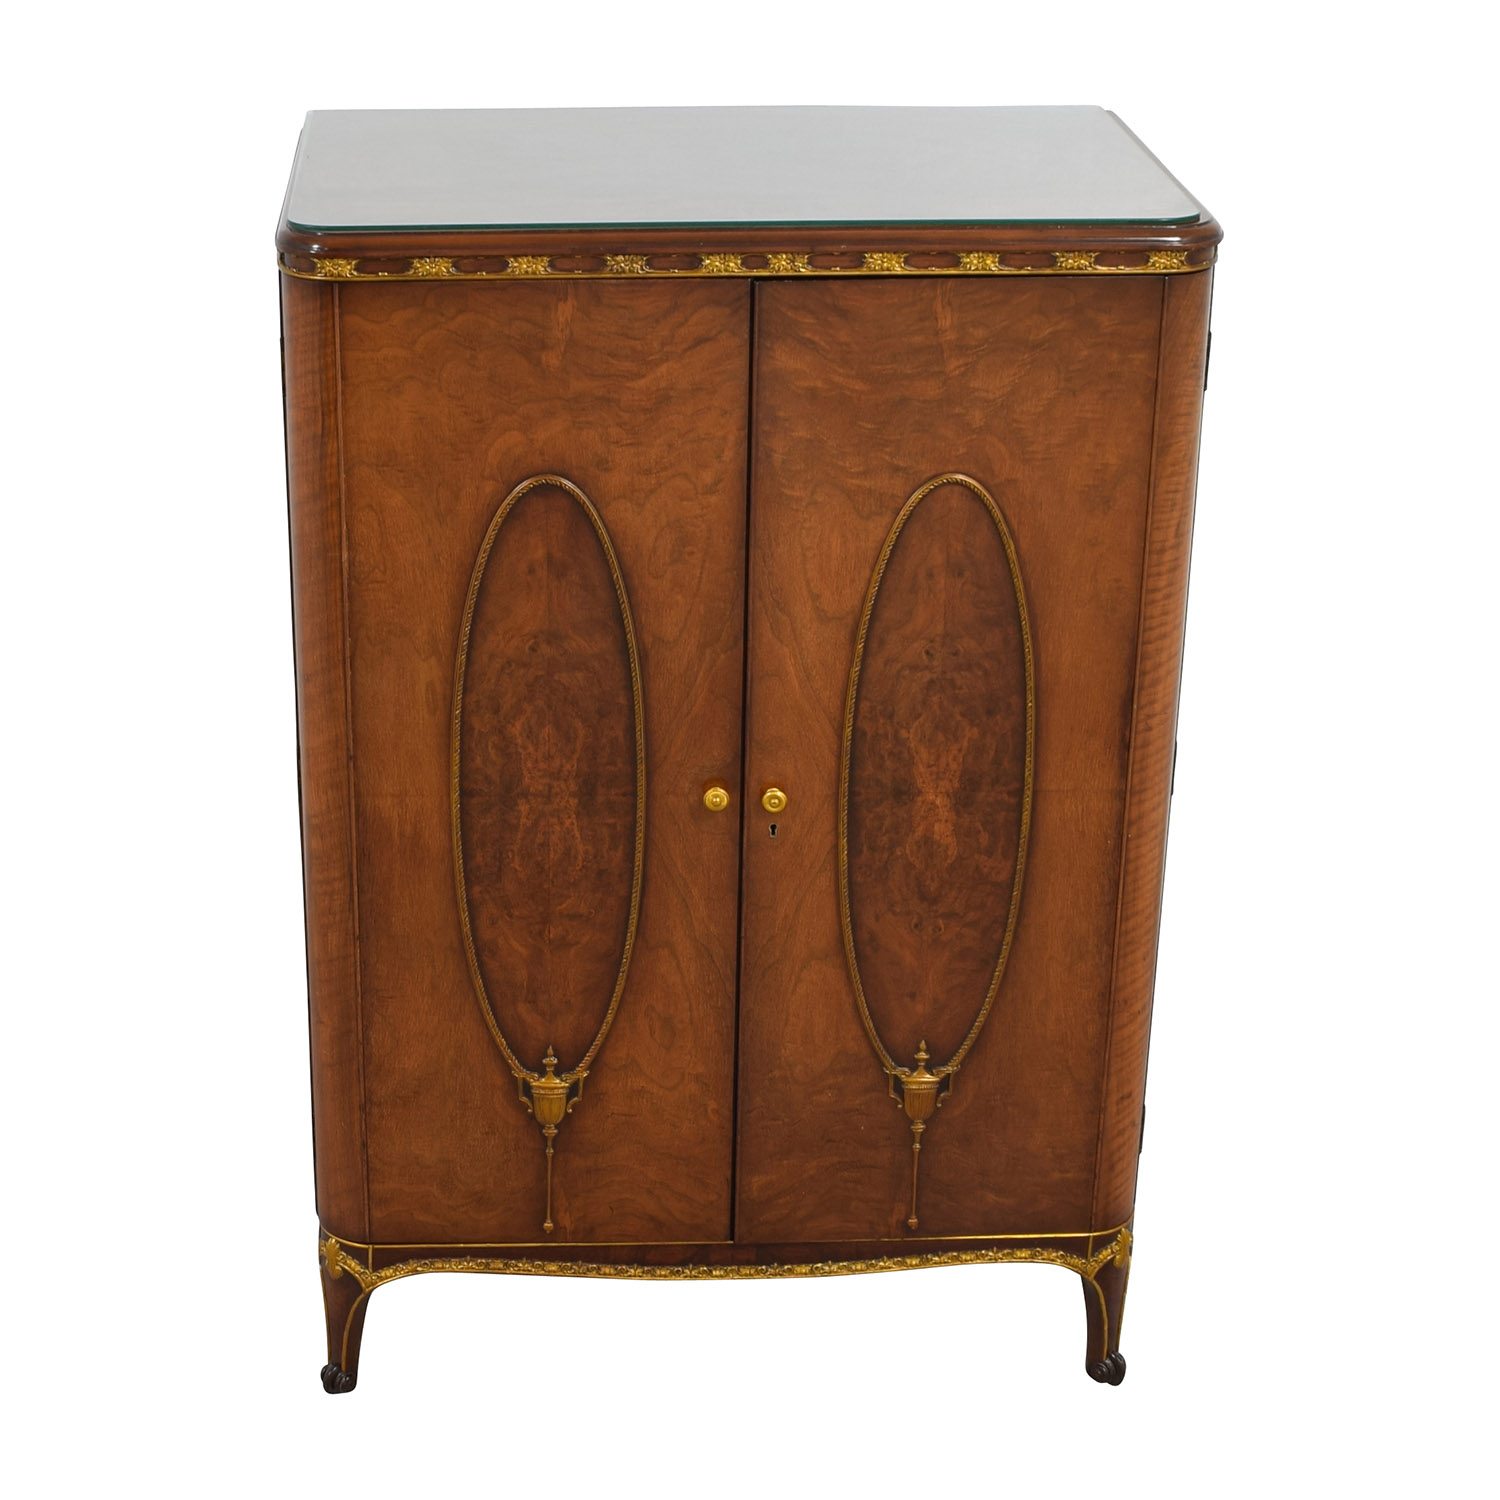 Antique Wardrobe with Gold Trim price